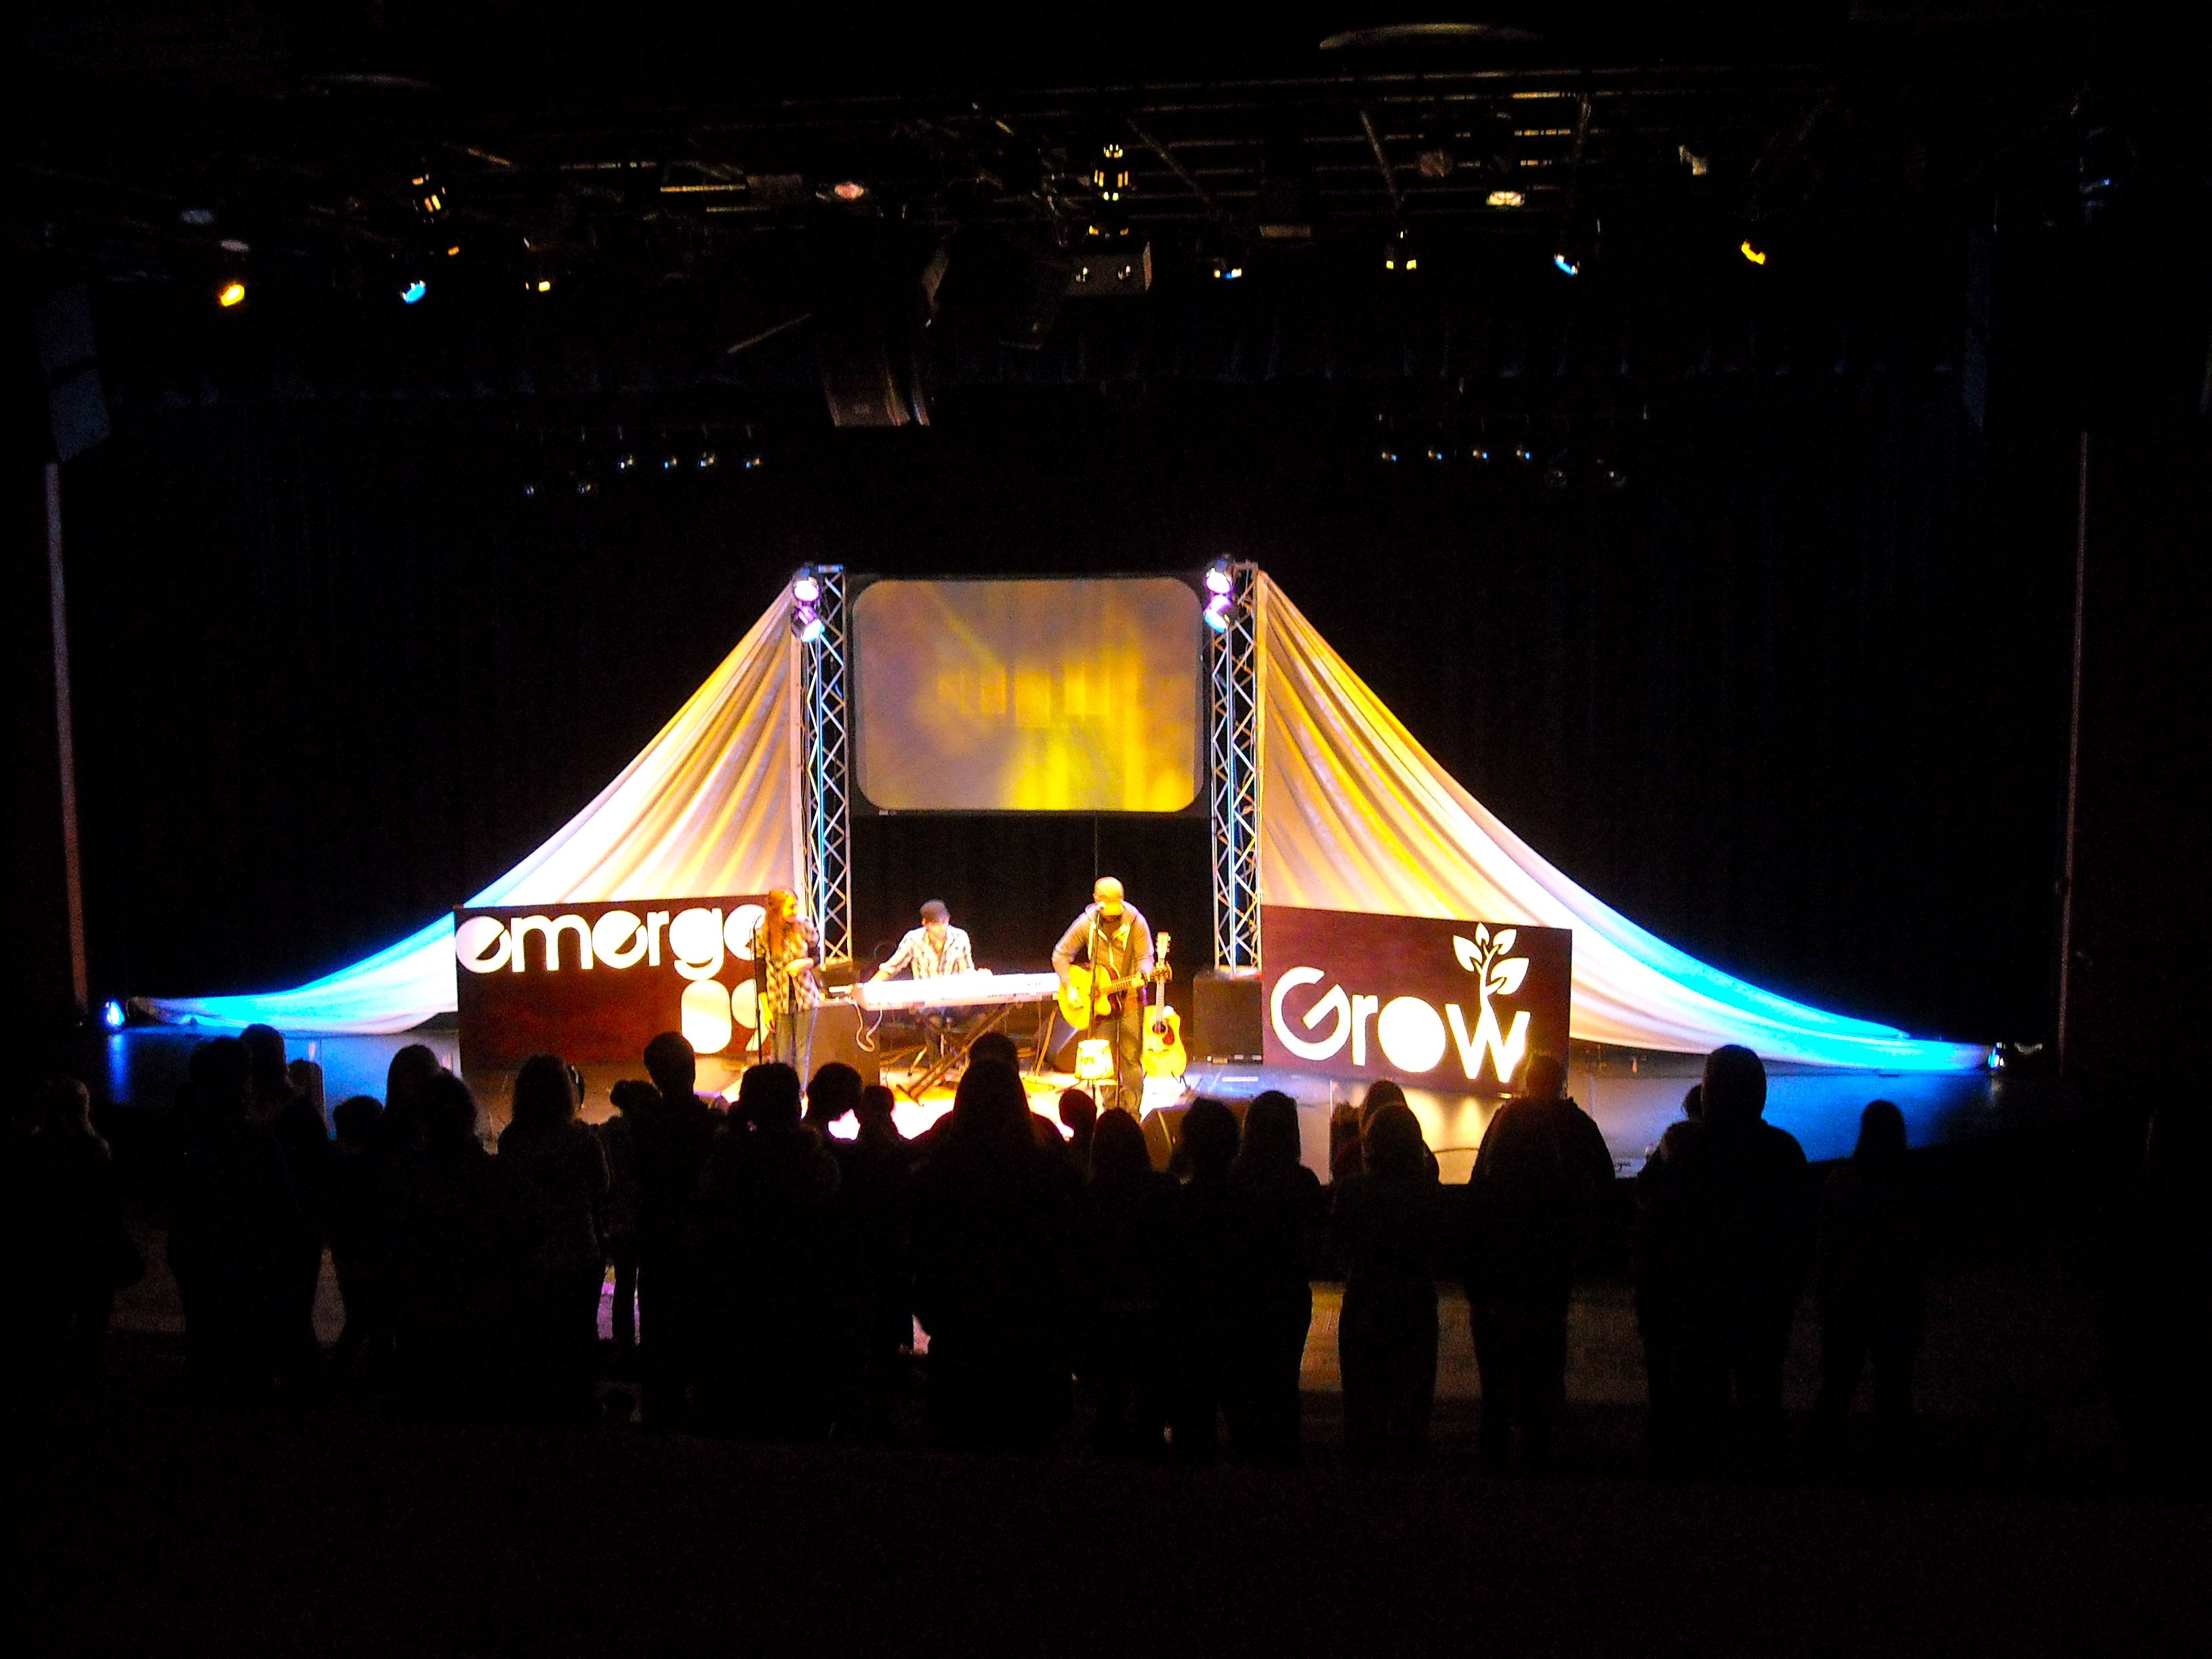 Church Stage Fabric - Another Cool Stage Design By Christopher